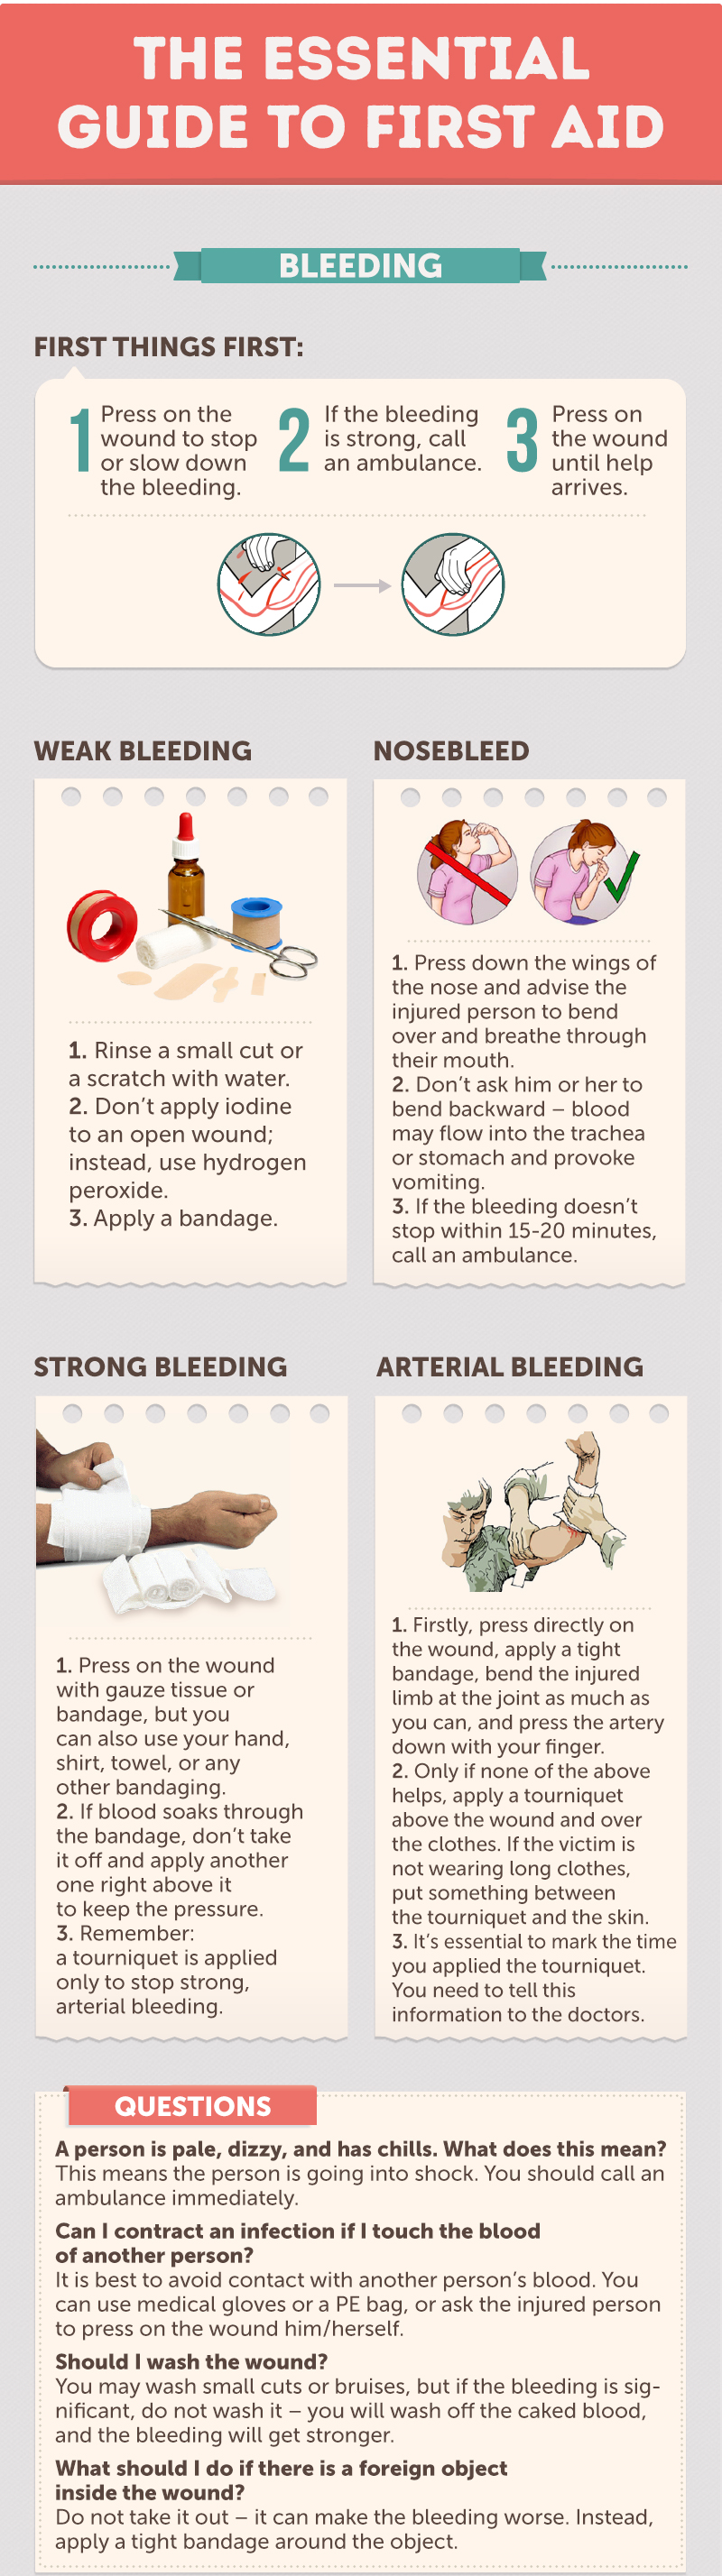 First Aid Basics for Bleeding